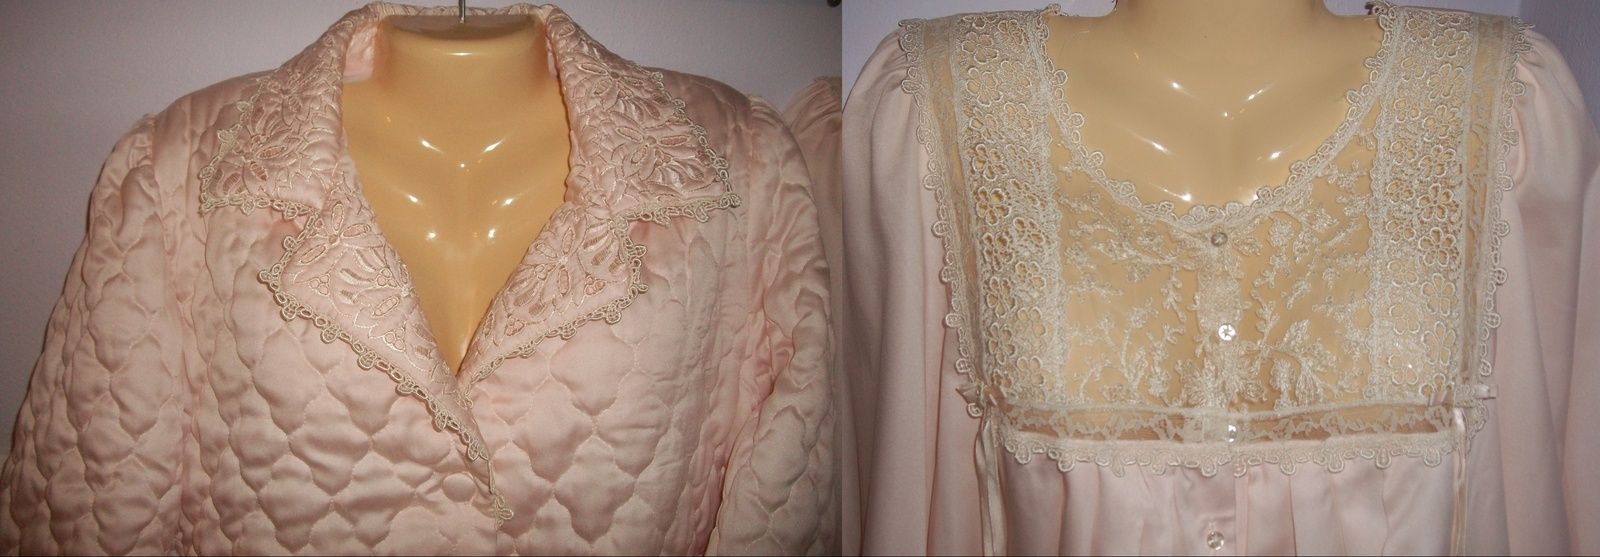 SOLD! COUTURE CHRISTIAN DIOR QUILTED ROBE & SATIN NIGHTGOWN PARIS ... : quilted satin robe - Adamdwight.com